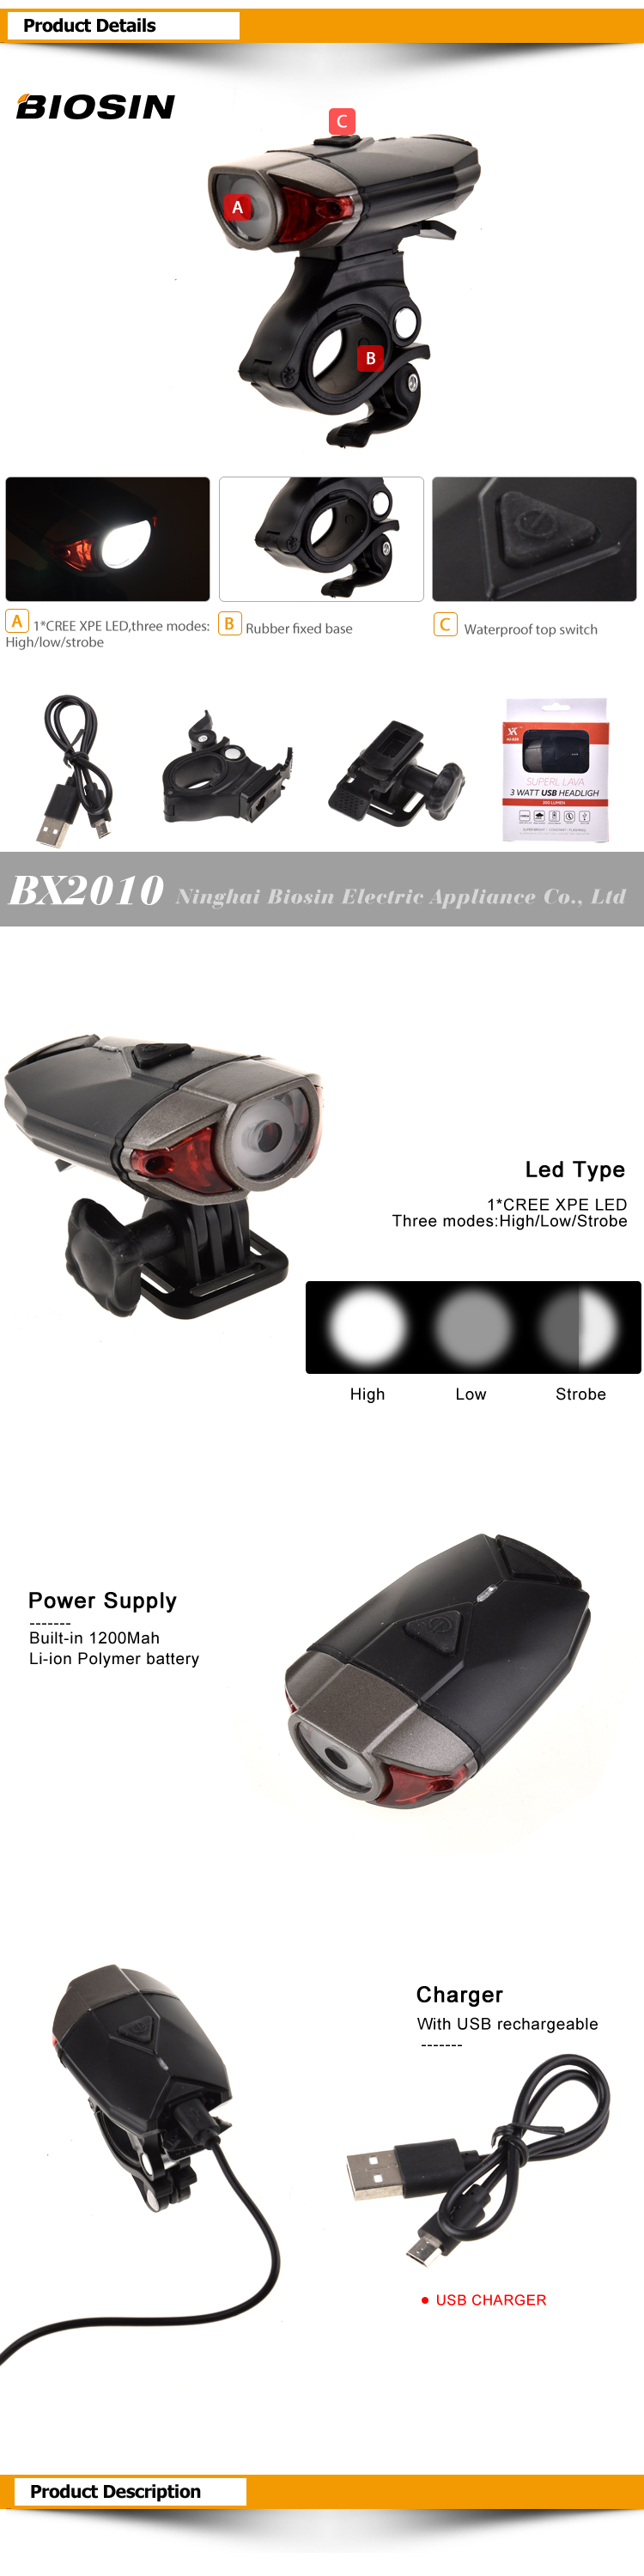 BIOSIN amazon hot selling usb rechargeable bike light set powerful lumens bicycle front light free tail light led bike front Lig